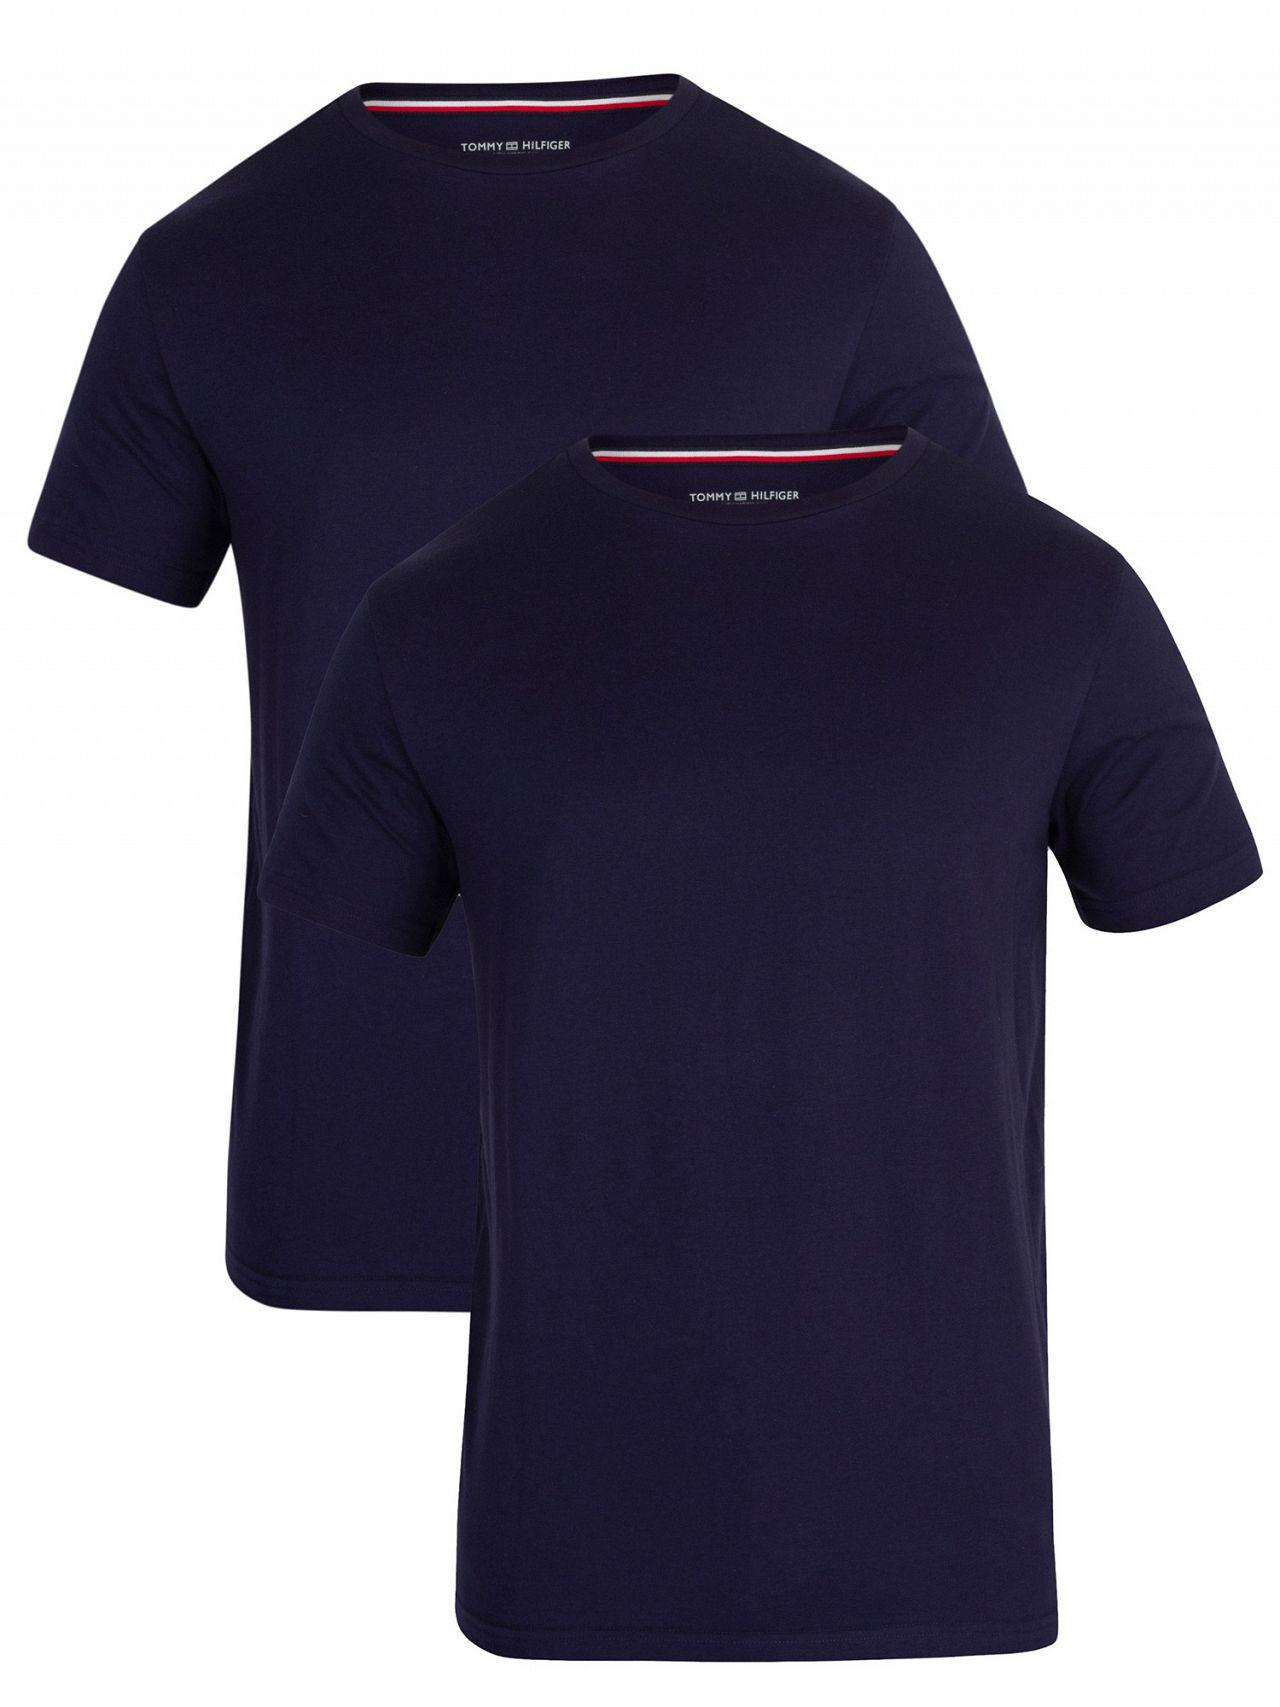 abb60902 Tommy Hilfiger Peacoat 2 Pack V-neck T-shirts in Blue for Men - Lyst